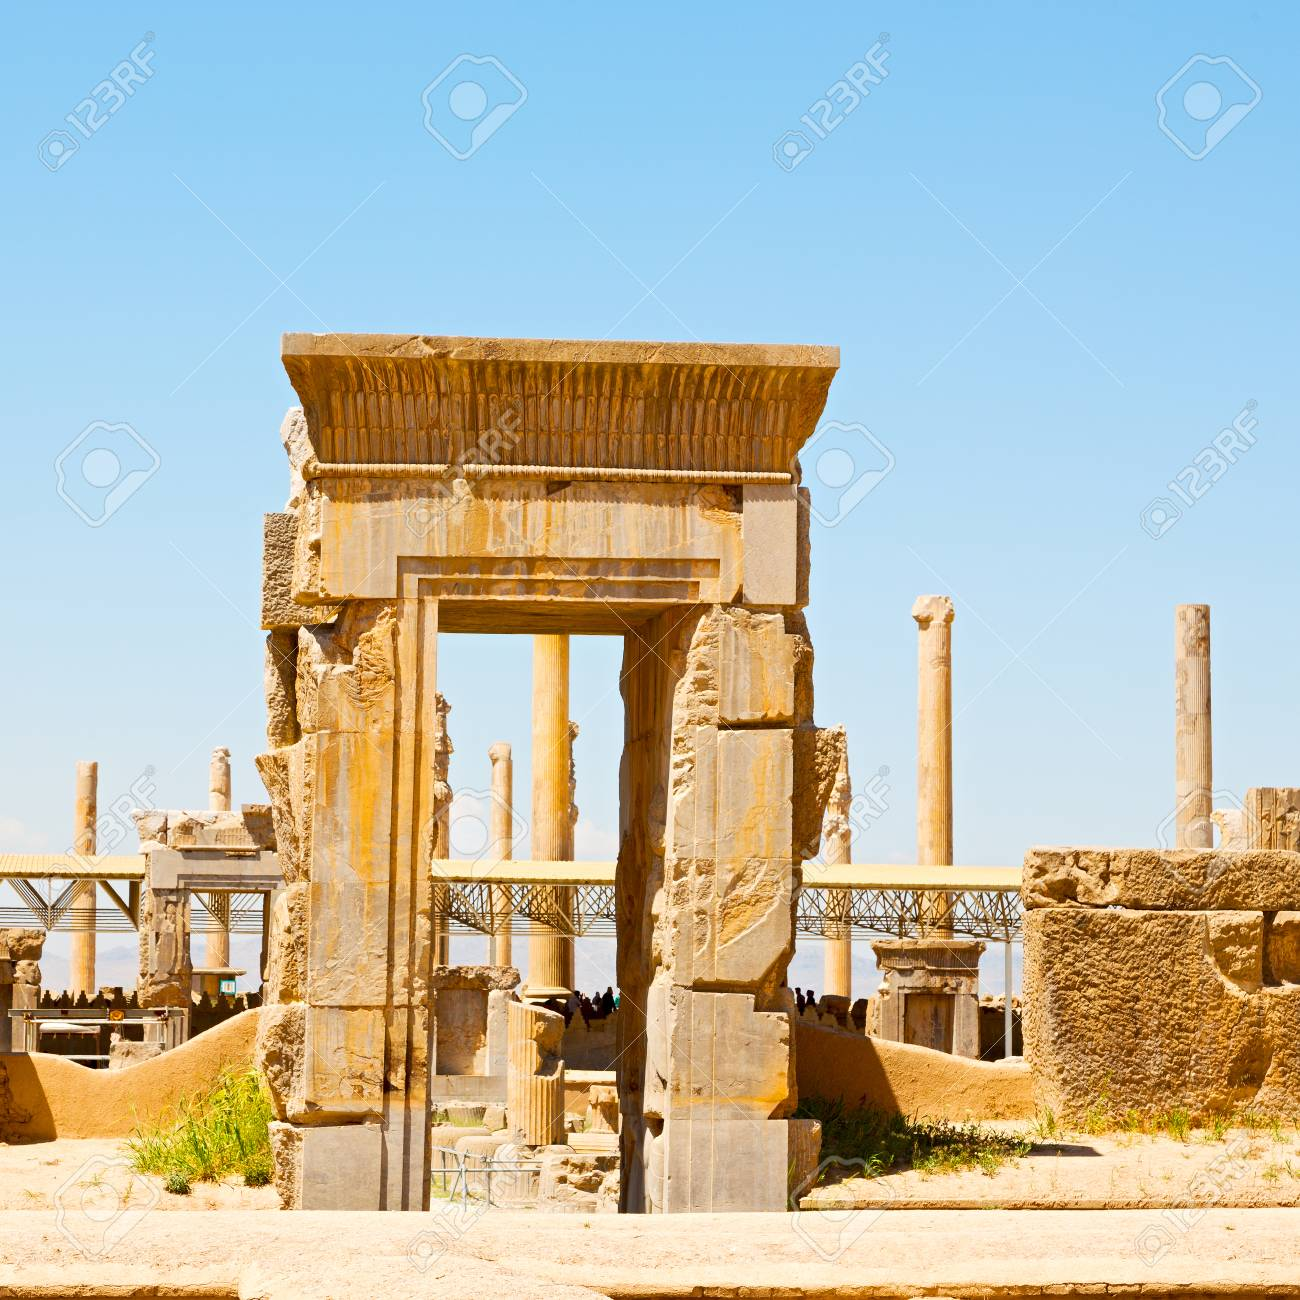 Blur In Iran Persepolis The Old Ruins Historical Destination Stock Photo Picture And Royalty Free Image Image 76747176